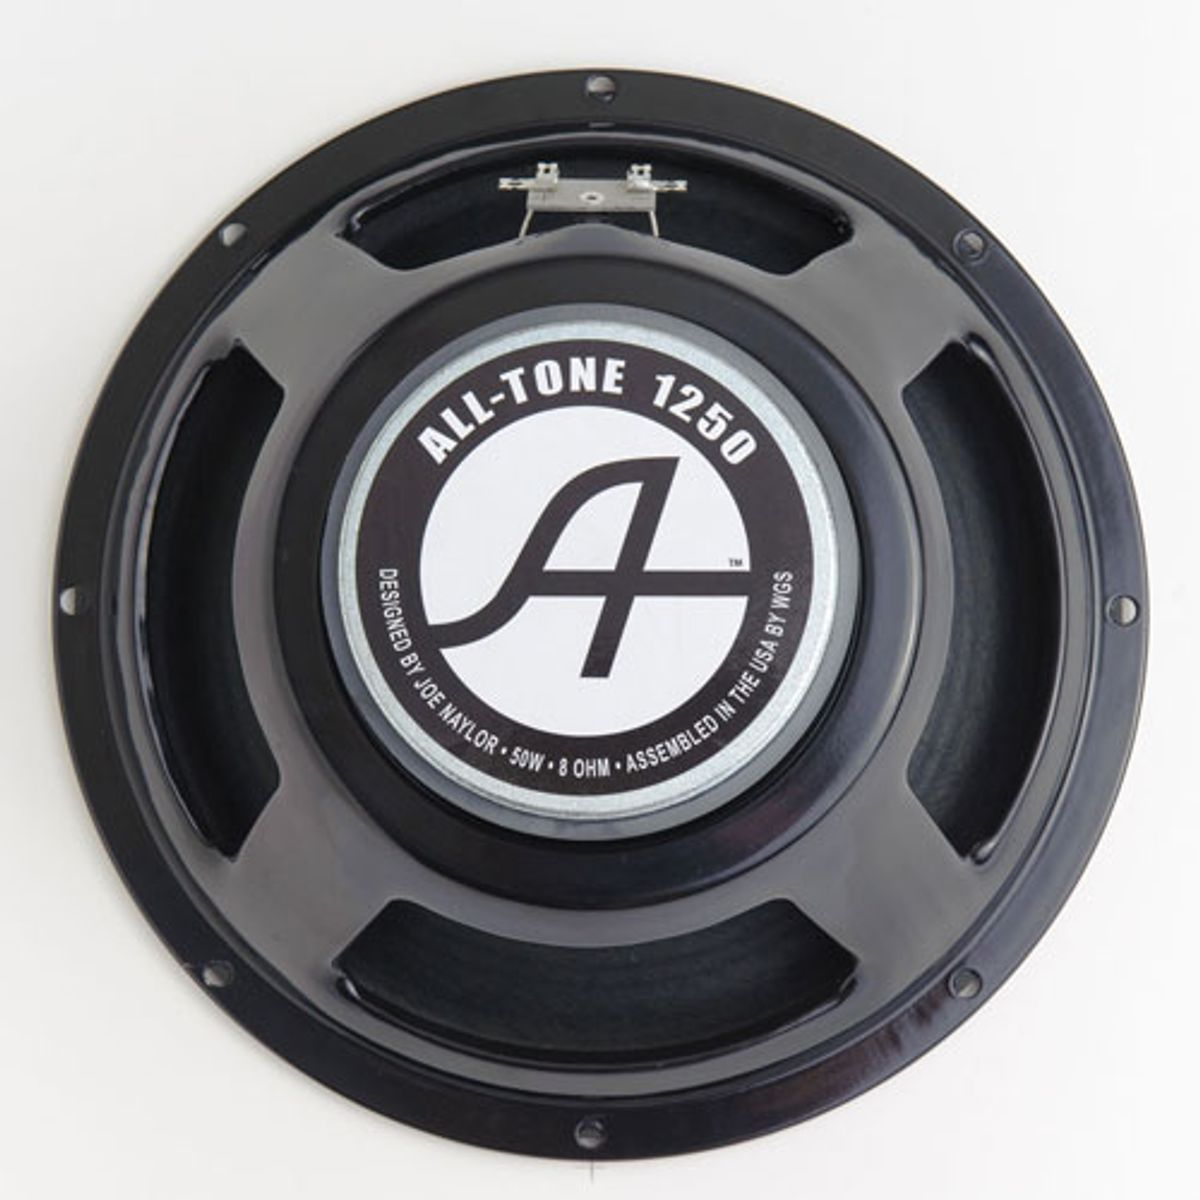 All-Tone Speakers Introduces the 1250